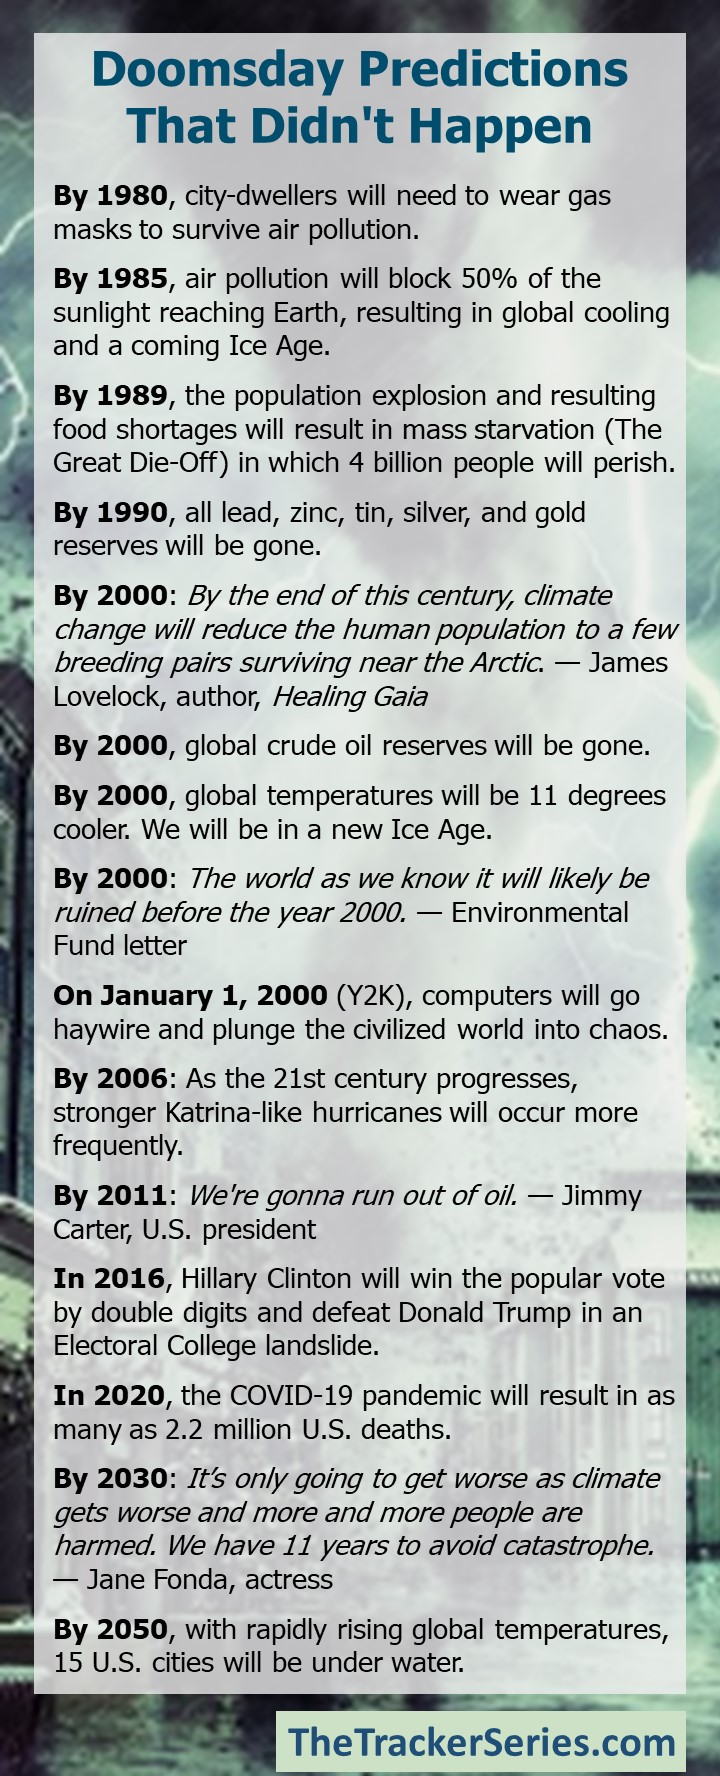 Doomsday Predictions That Didn't Happen